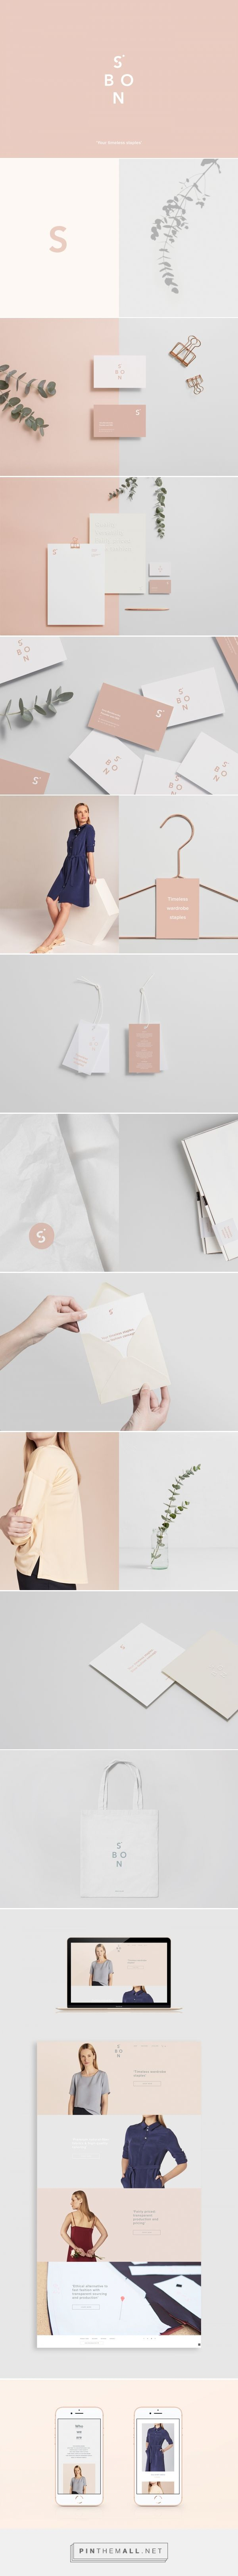 S.Bon Clothing Brand by Lidia Mínguez | Fivestar Branding Agency – Design and Branding Agency & Curated Inspiration Gallery